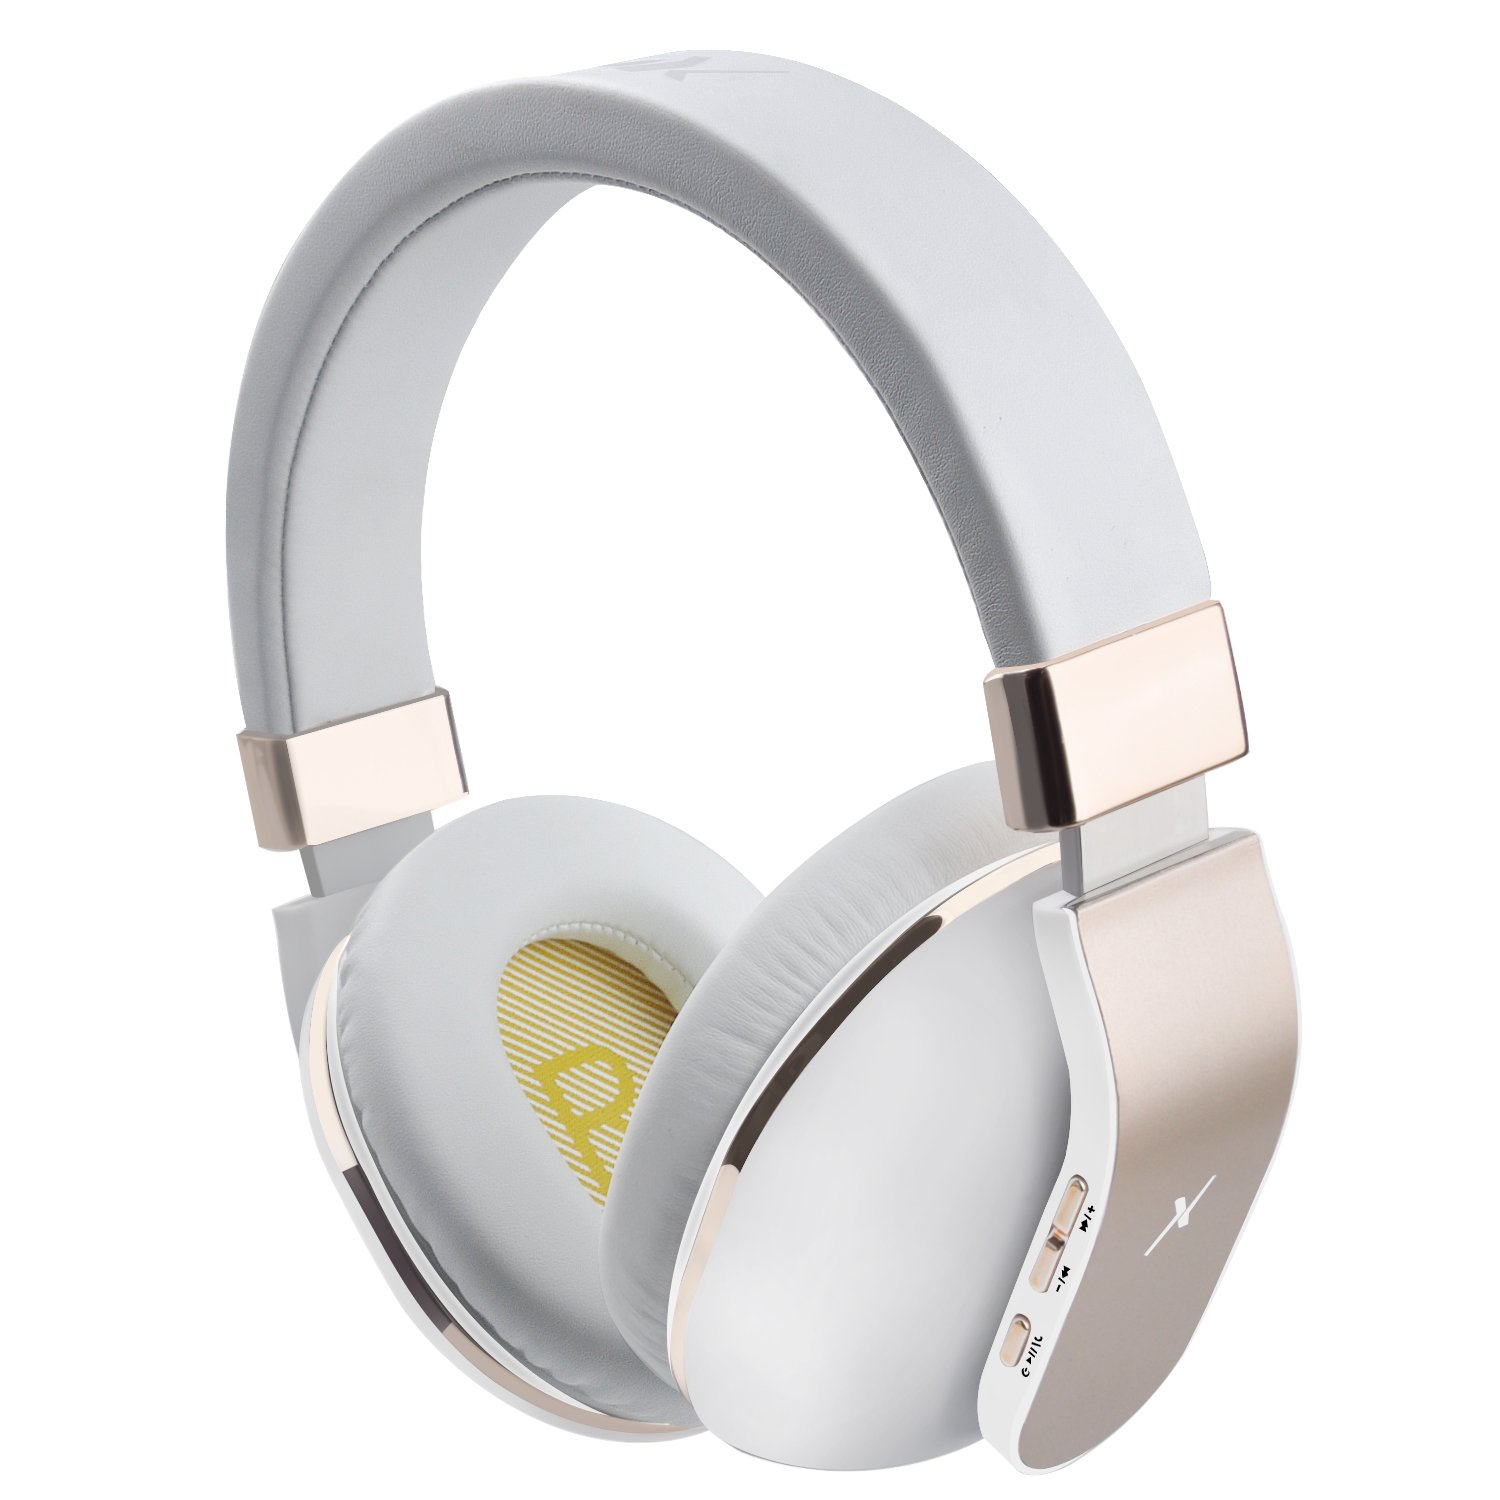 Riwbox XBT-780 Bluetooth Headphones Over Ear, Noise Isolatio V5.0 Wireless Headset with Volume Control, w/Built-in Mic and Wired Mode for PC/Cell Phones/TV (Gold White)